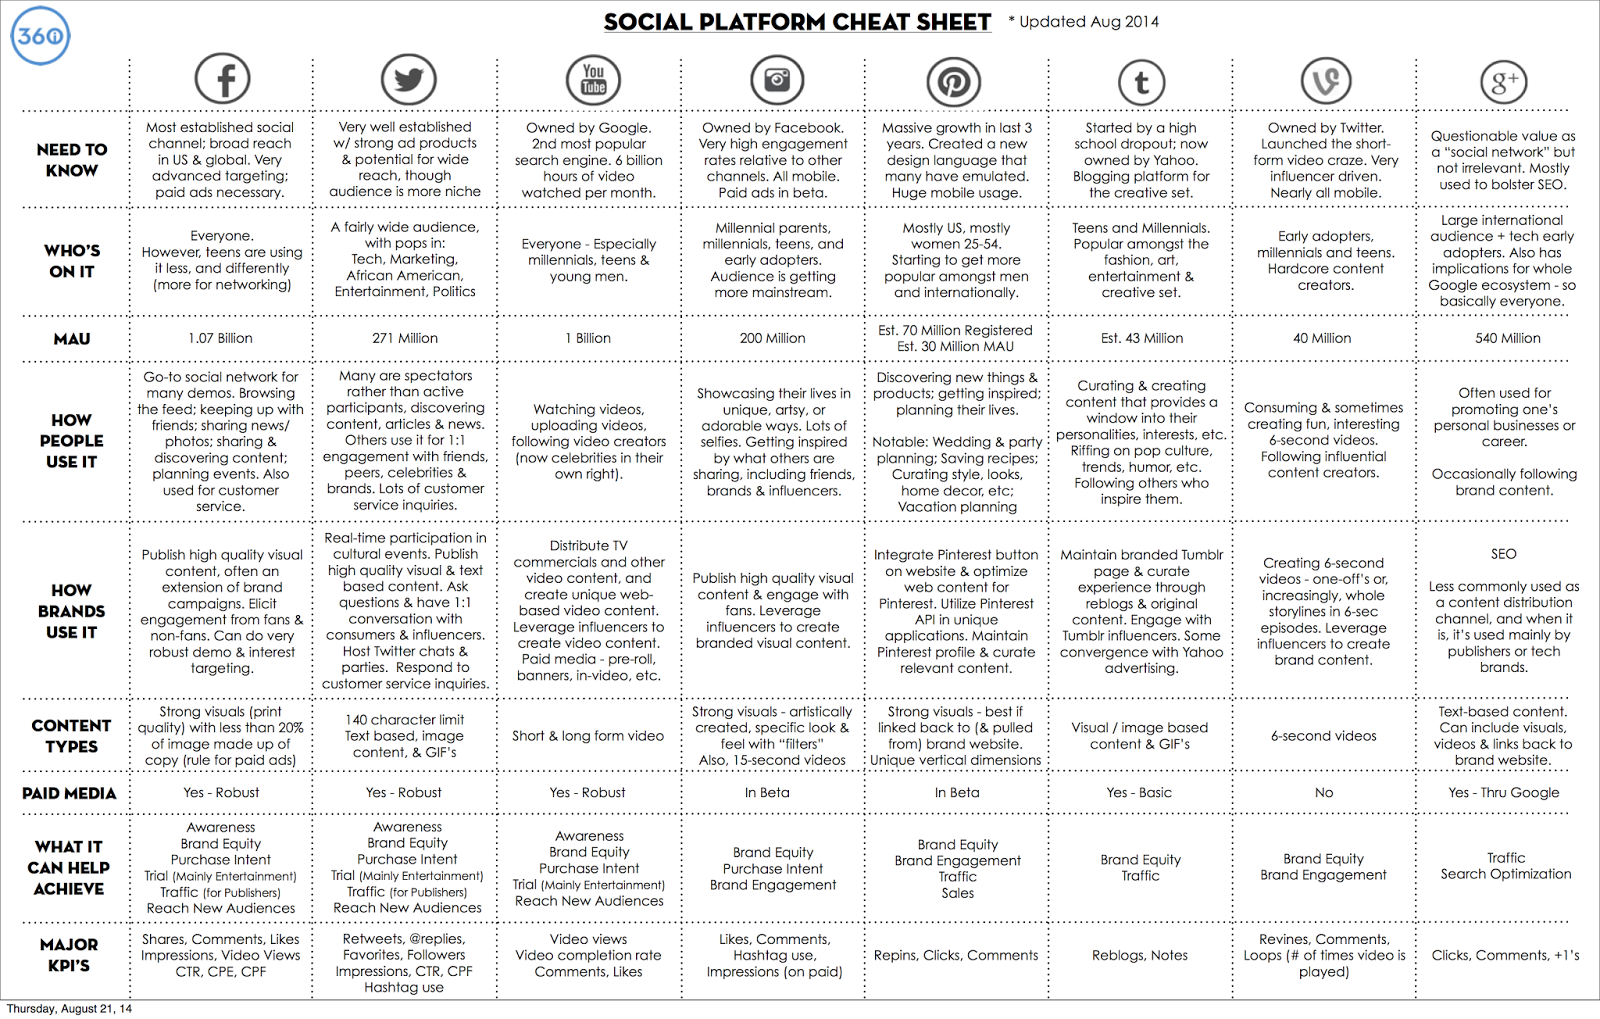 Social Media Marketing Cheat Sheet For Facebook